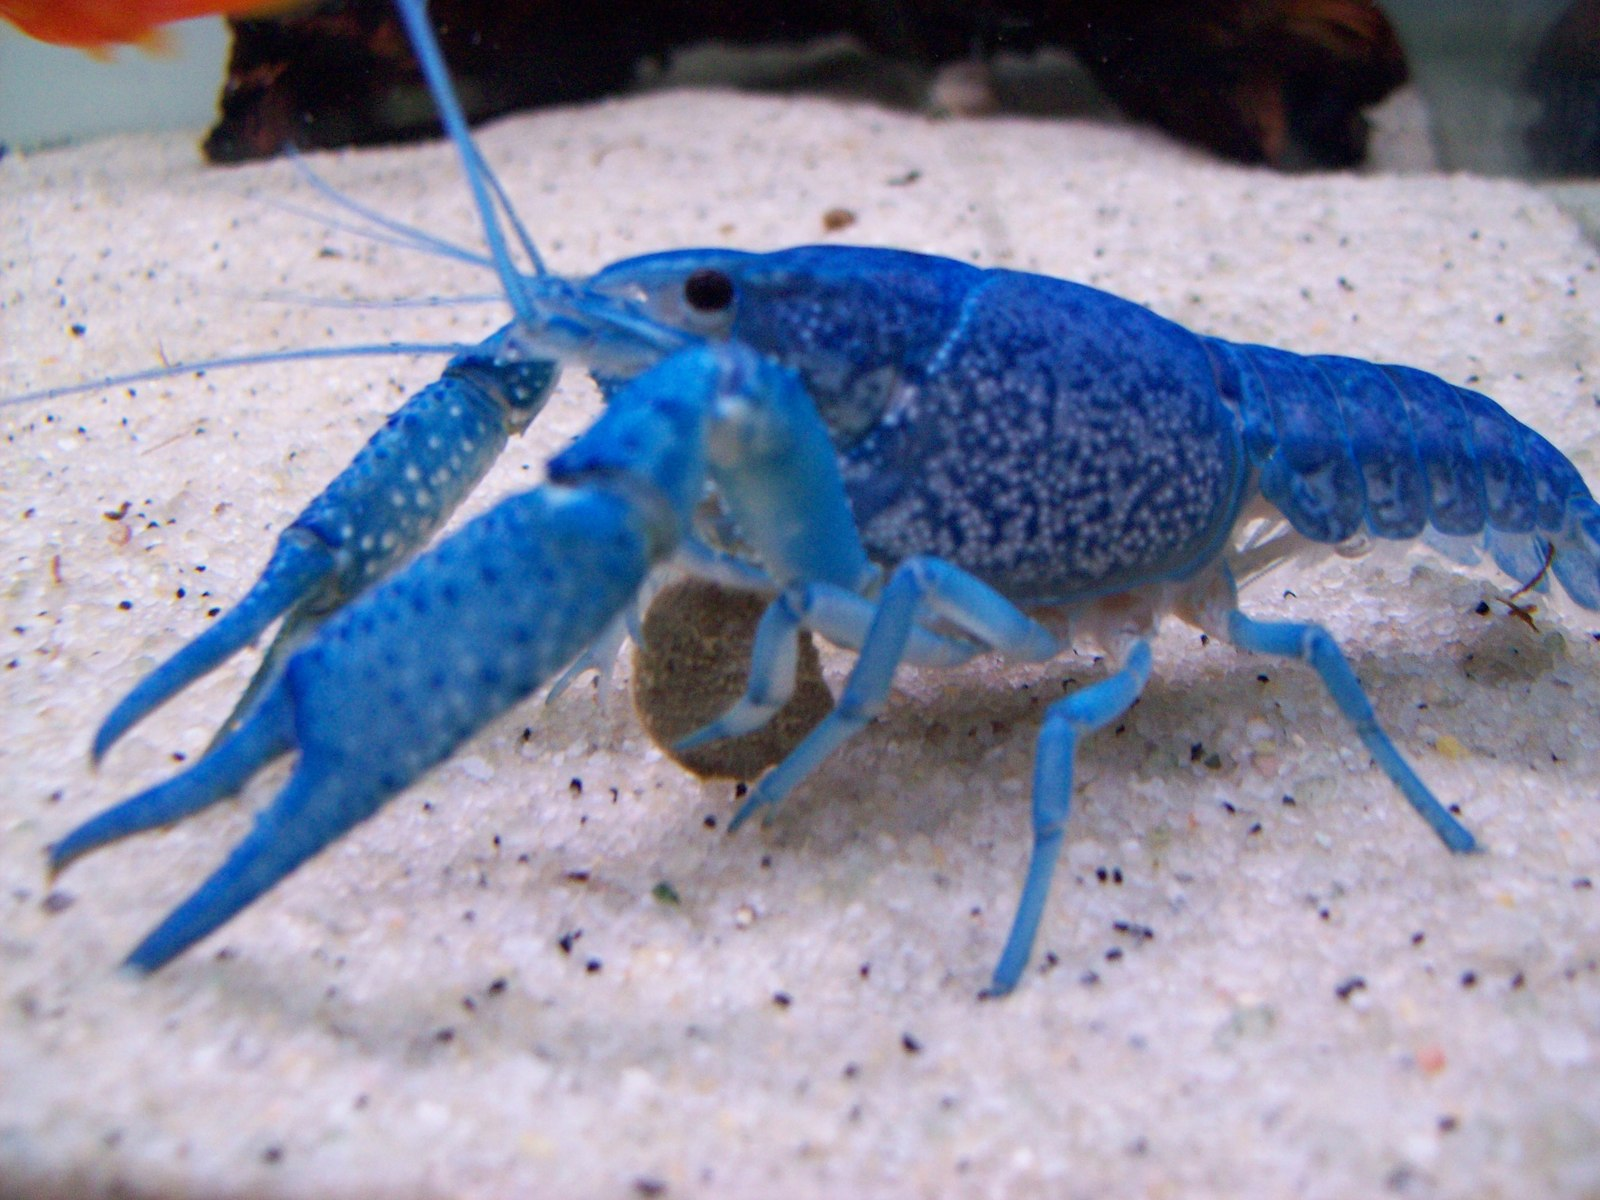 blue crayfish eating a veggie pellet | by Justin Deans